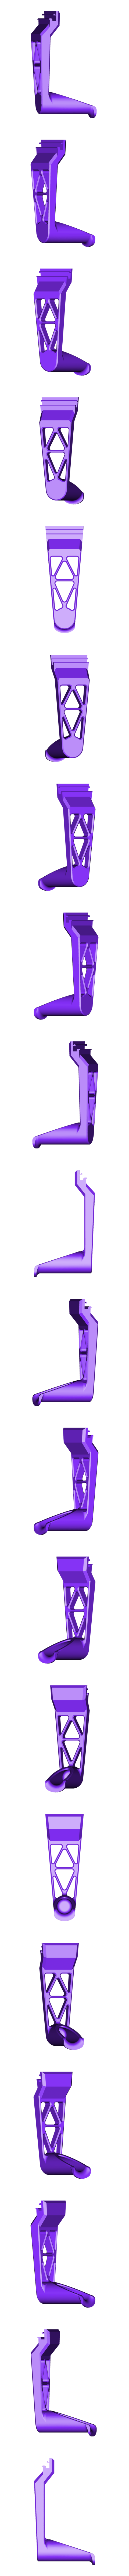 Filament_Holder_3.1_Without_Filament_Guide.STL Download free STL file TEVO Tornado/20x20 Extrusion Filament Holder 3 • 3D printable object, 3D_Cre8or